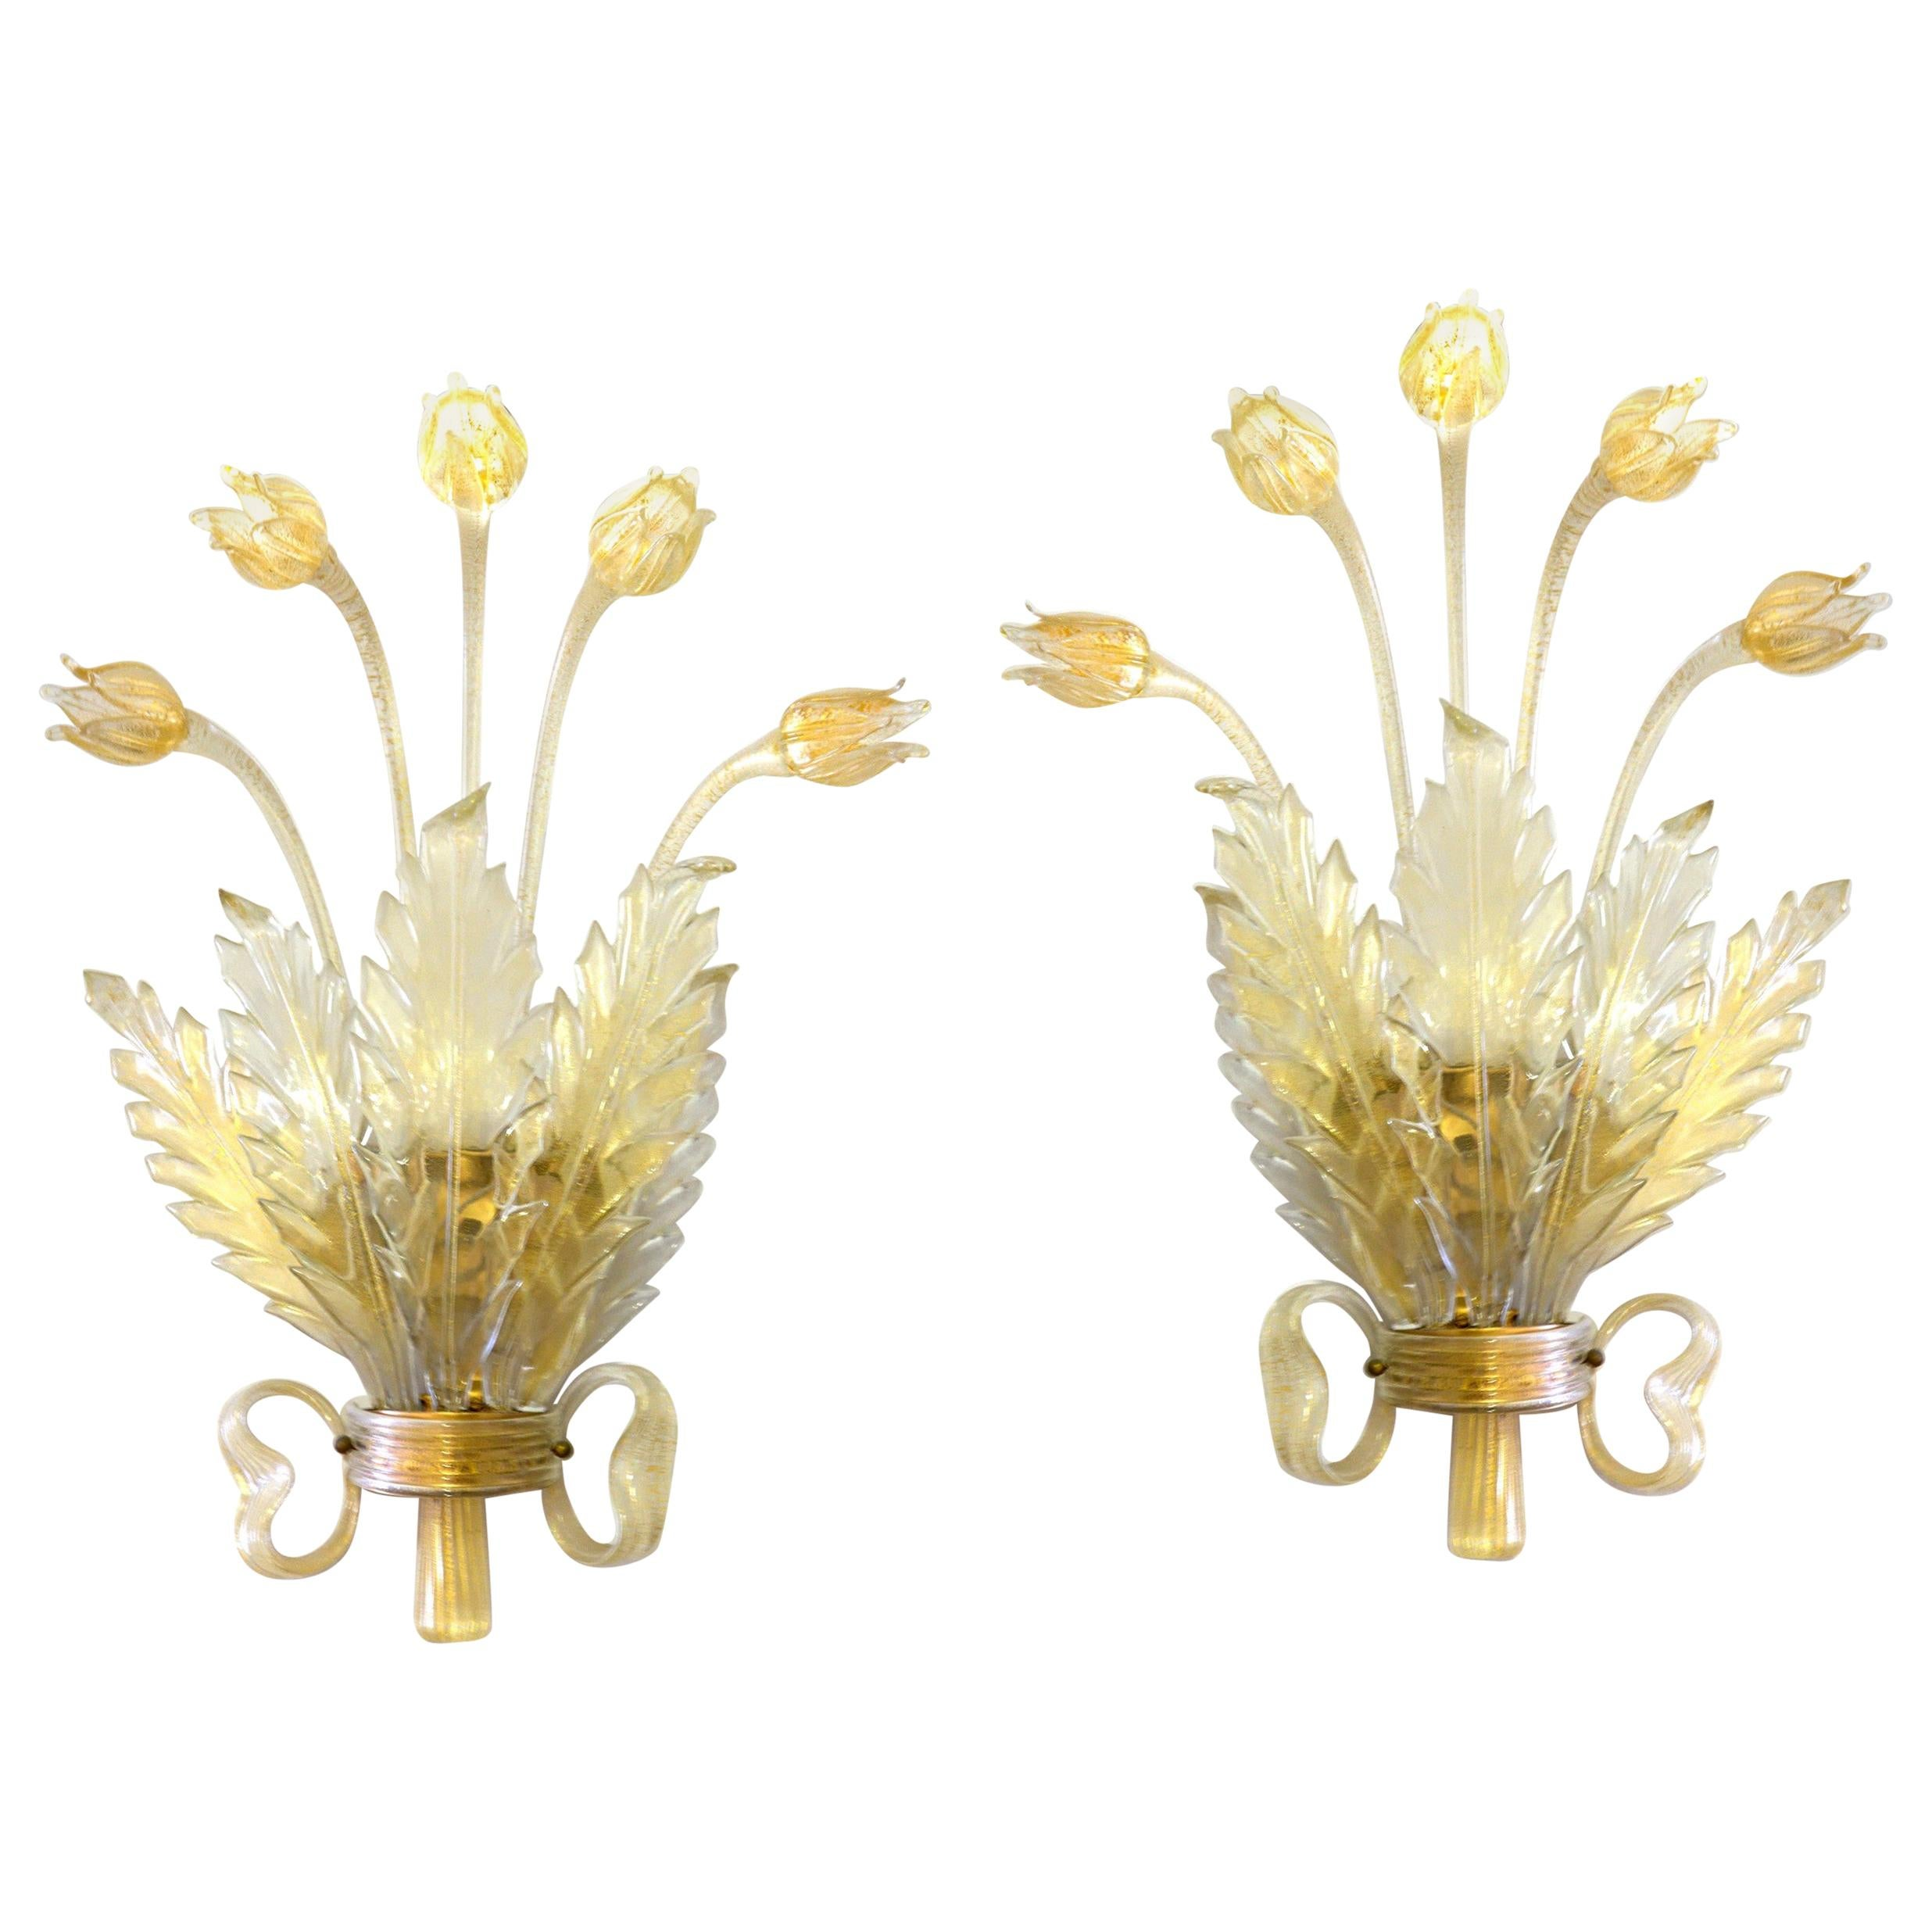 Seguso Pair of Sconces, Murano Glass with Gold Leaf, Tulips, Leaves and Bow Deco